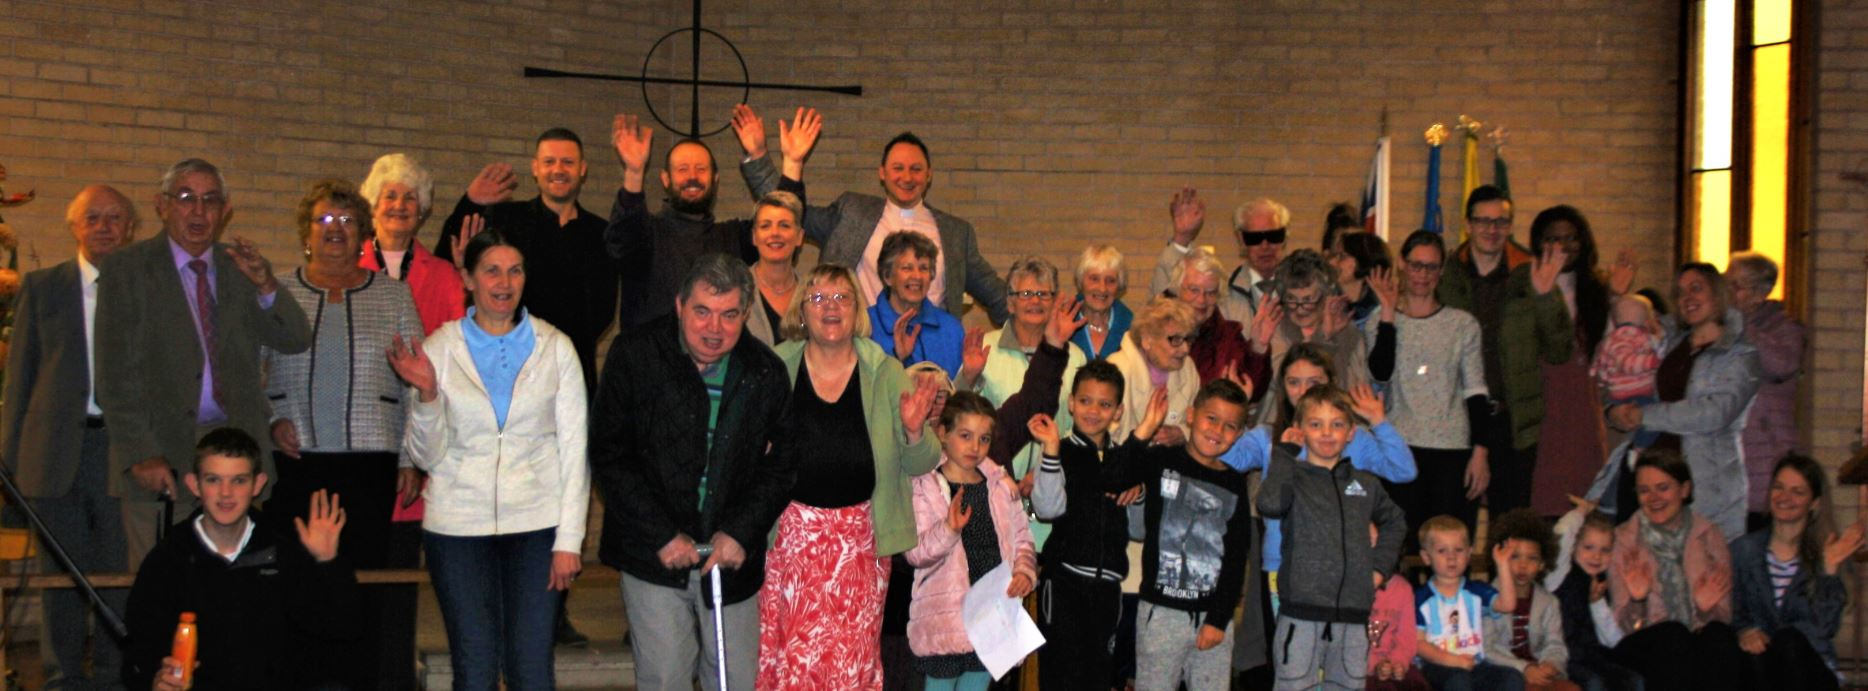 full congregation st christophers church preston